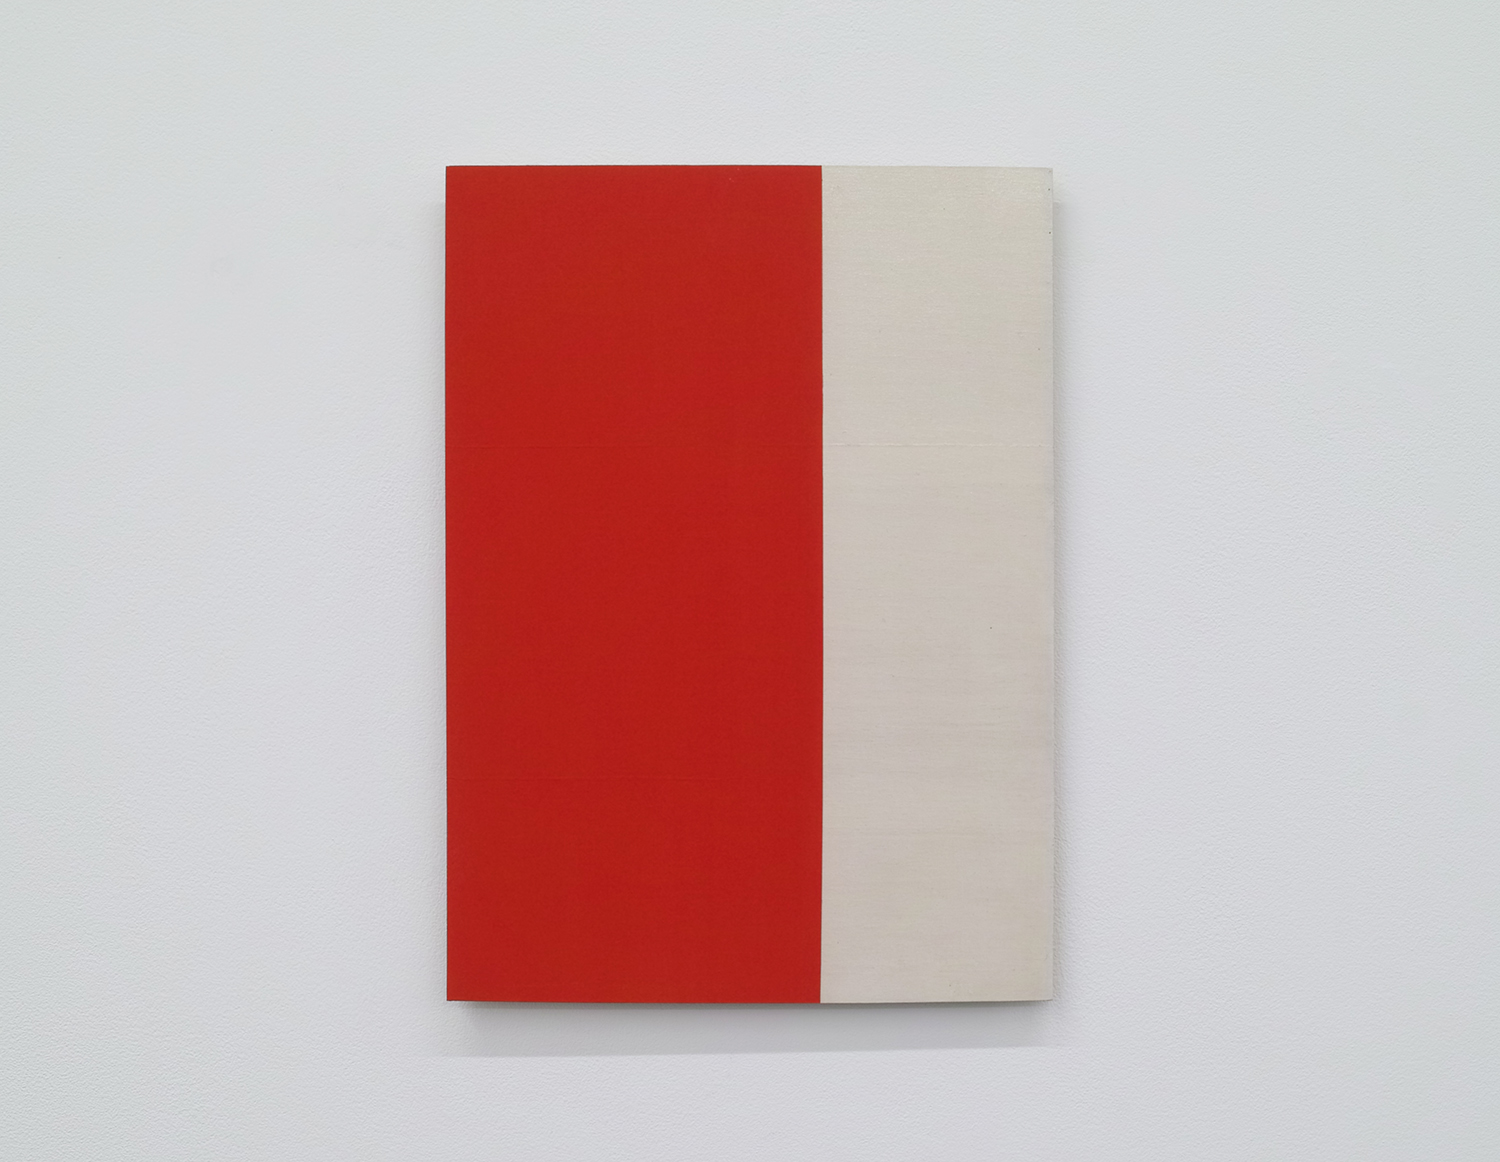 Text No.330<br>acrylic on plywood<br>314 x 294 x 10 mm<br>2002